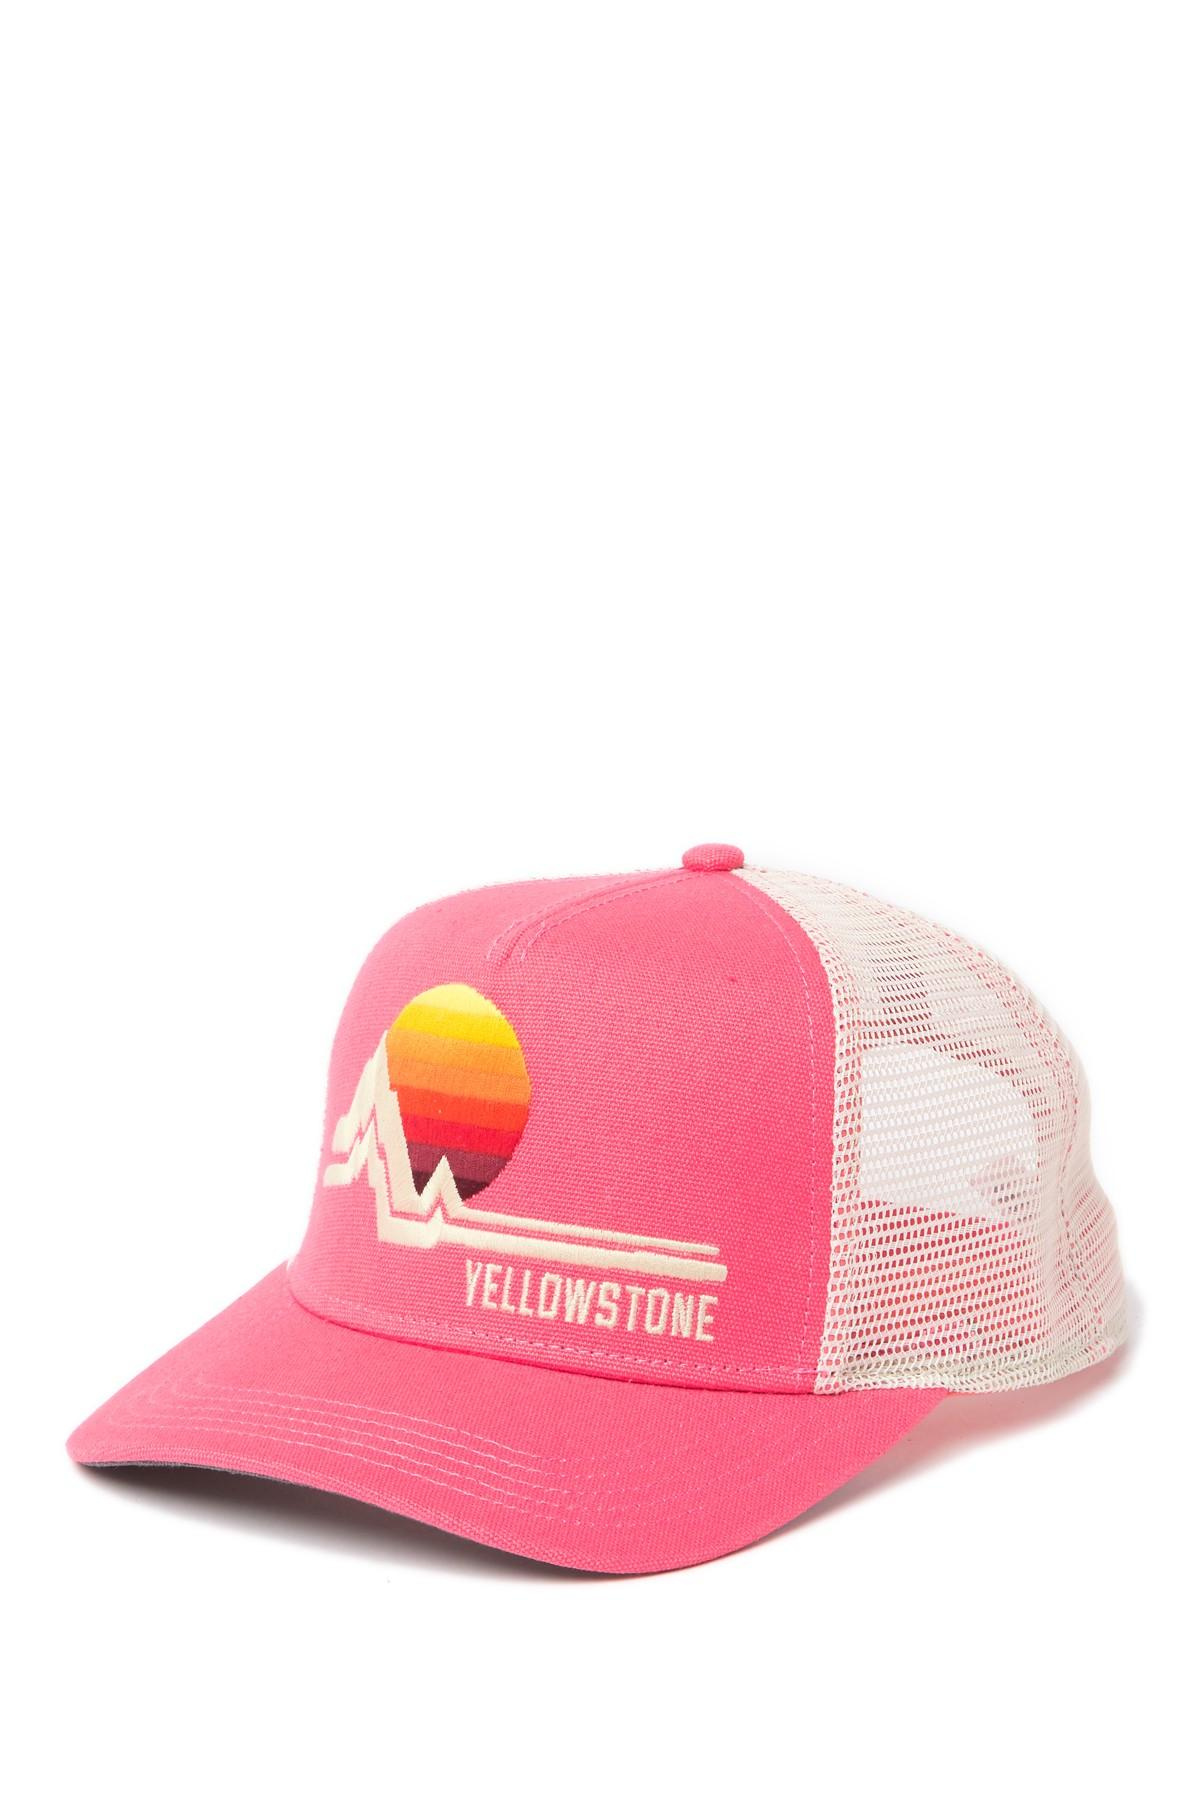 baa1f64b7 American Needle Yellowstone National Park Valin Hat in Pink for Men ...